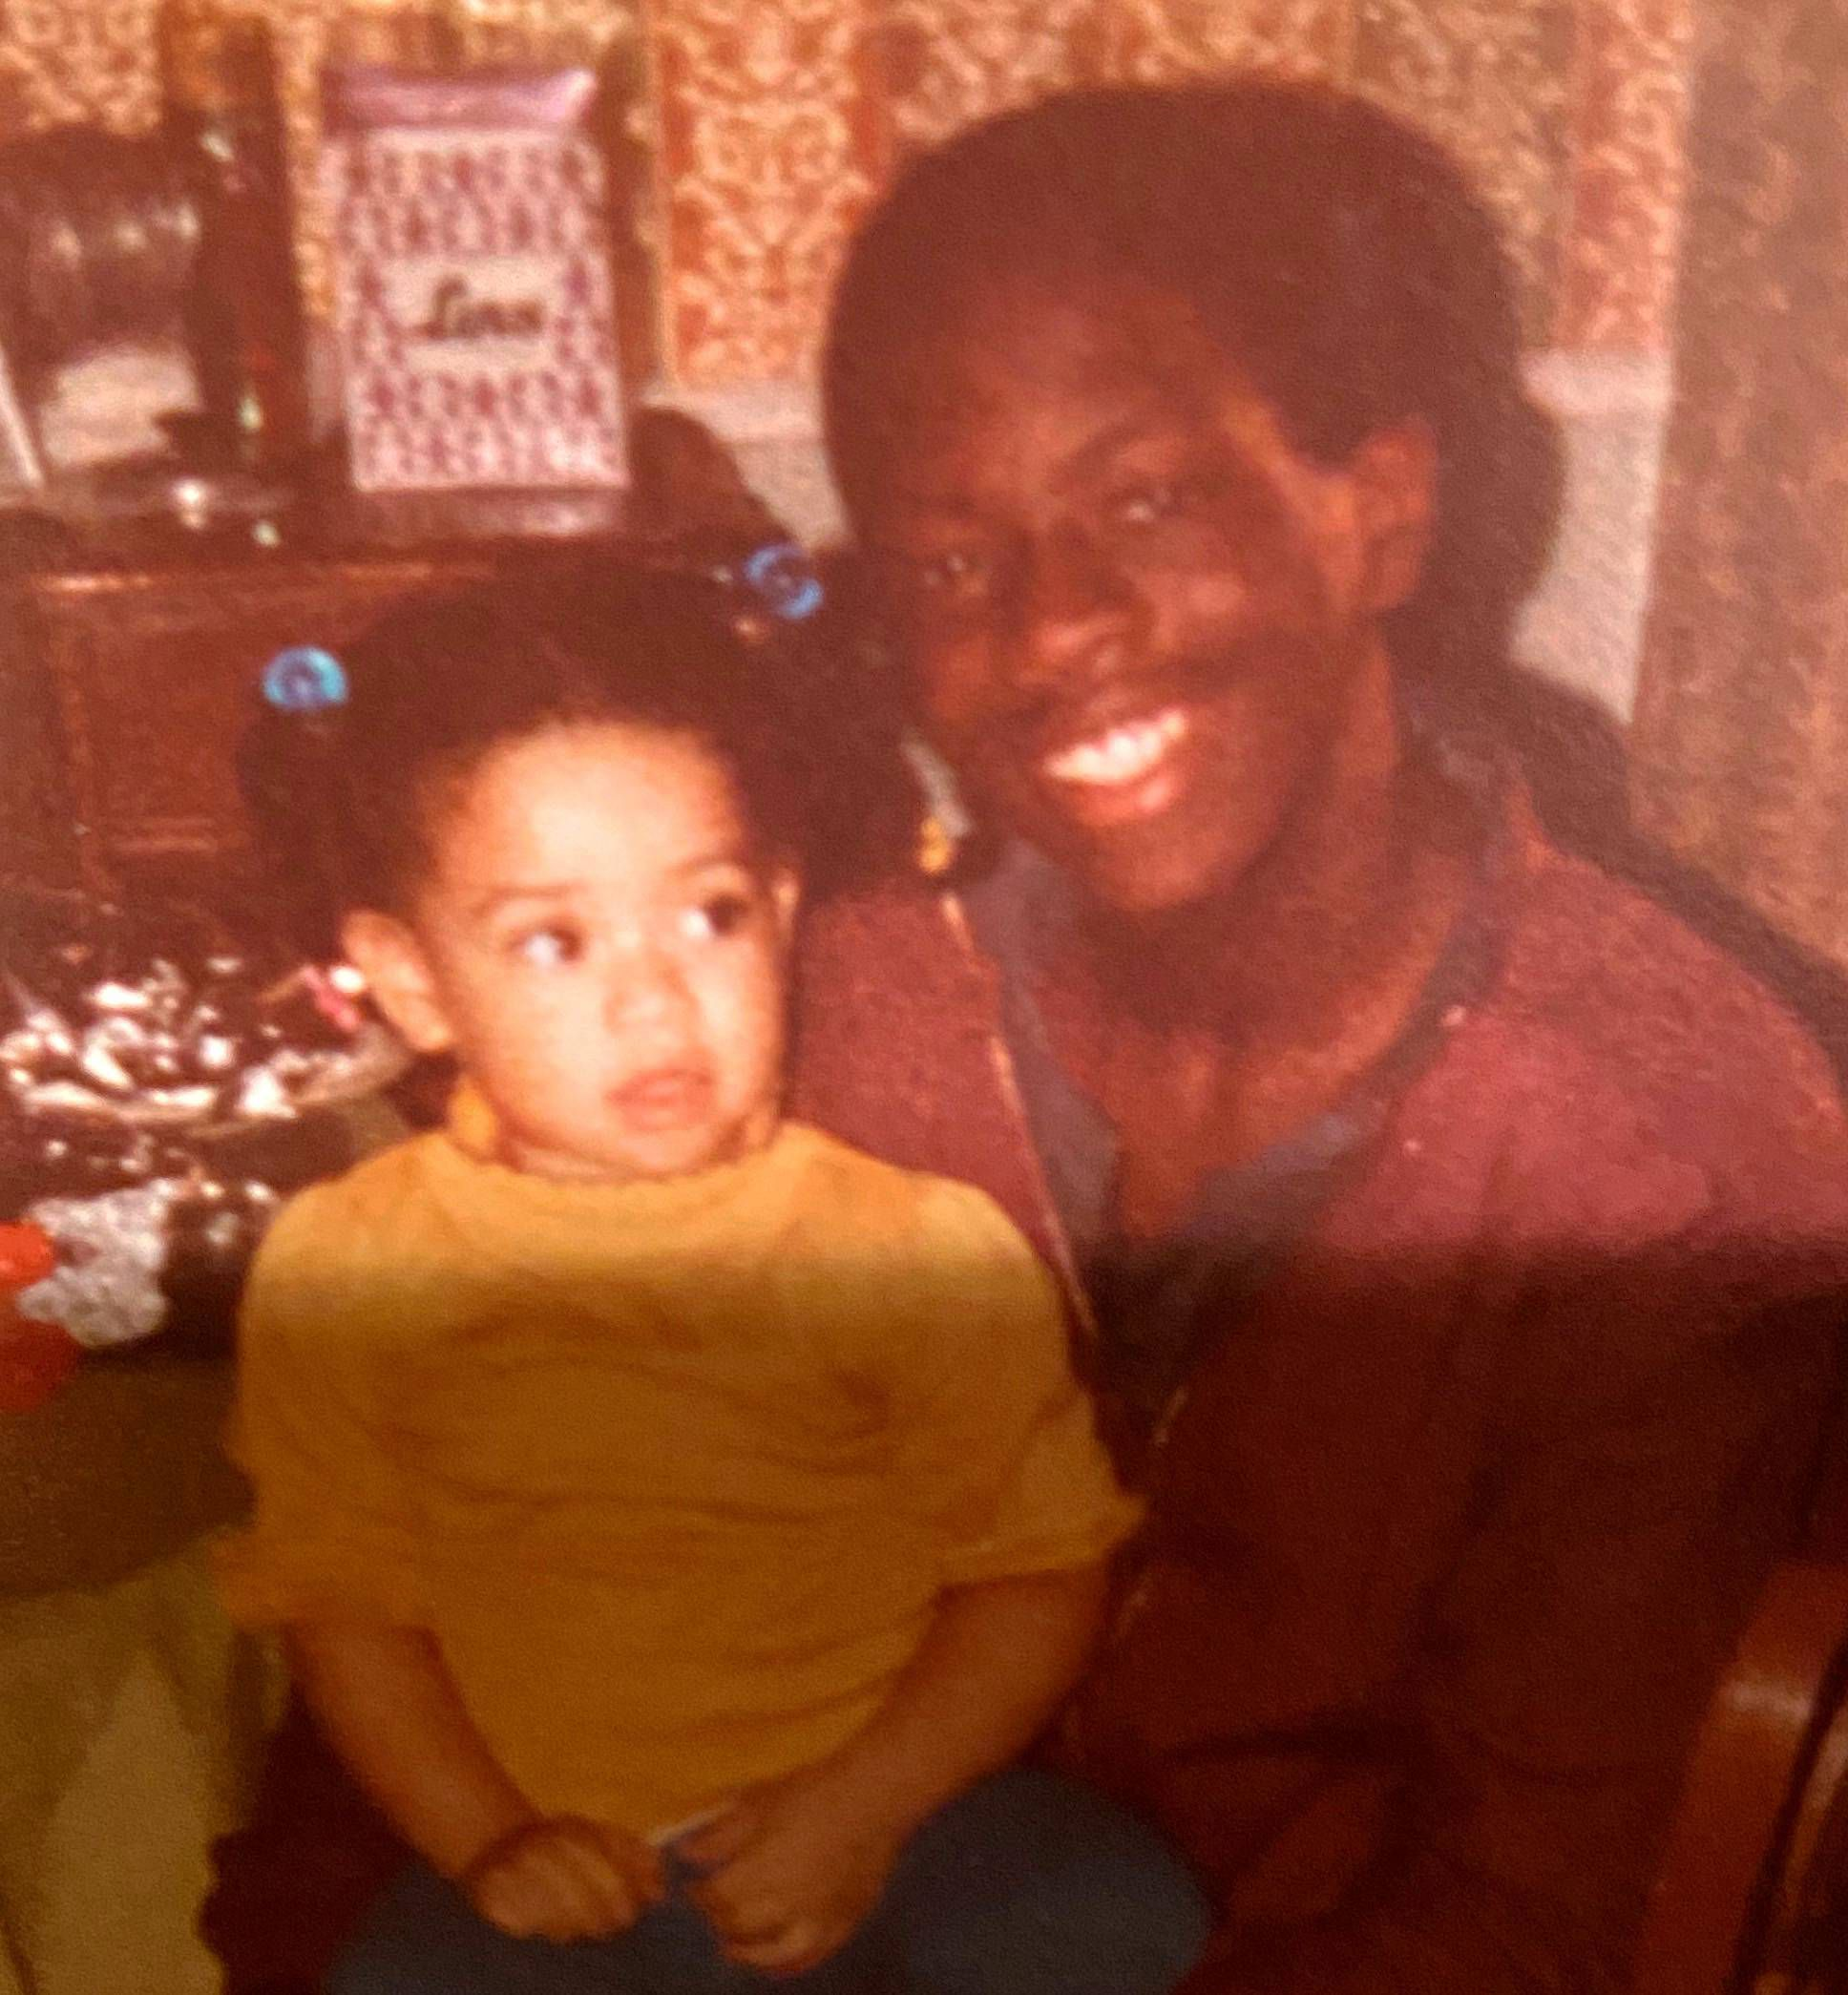 Amanda Edwards, a Democratic candidate for U.S., lost her older cousin Reggie Mason to gun violence at a young age.